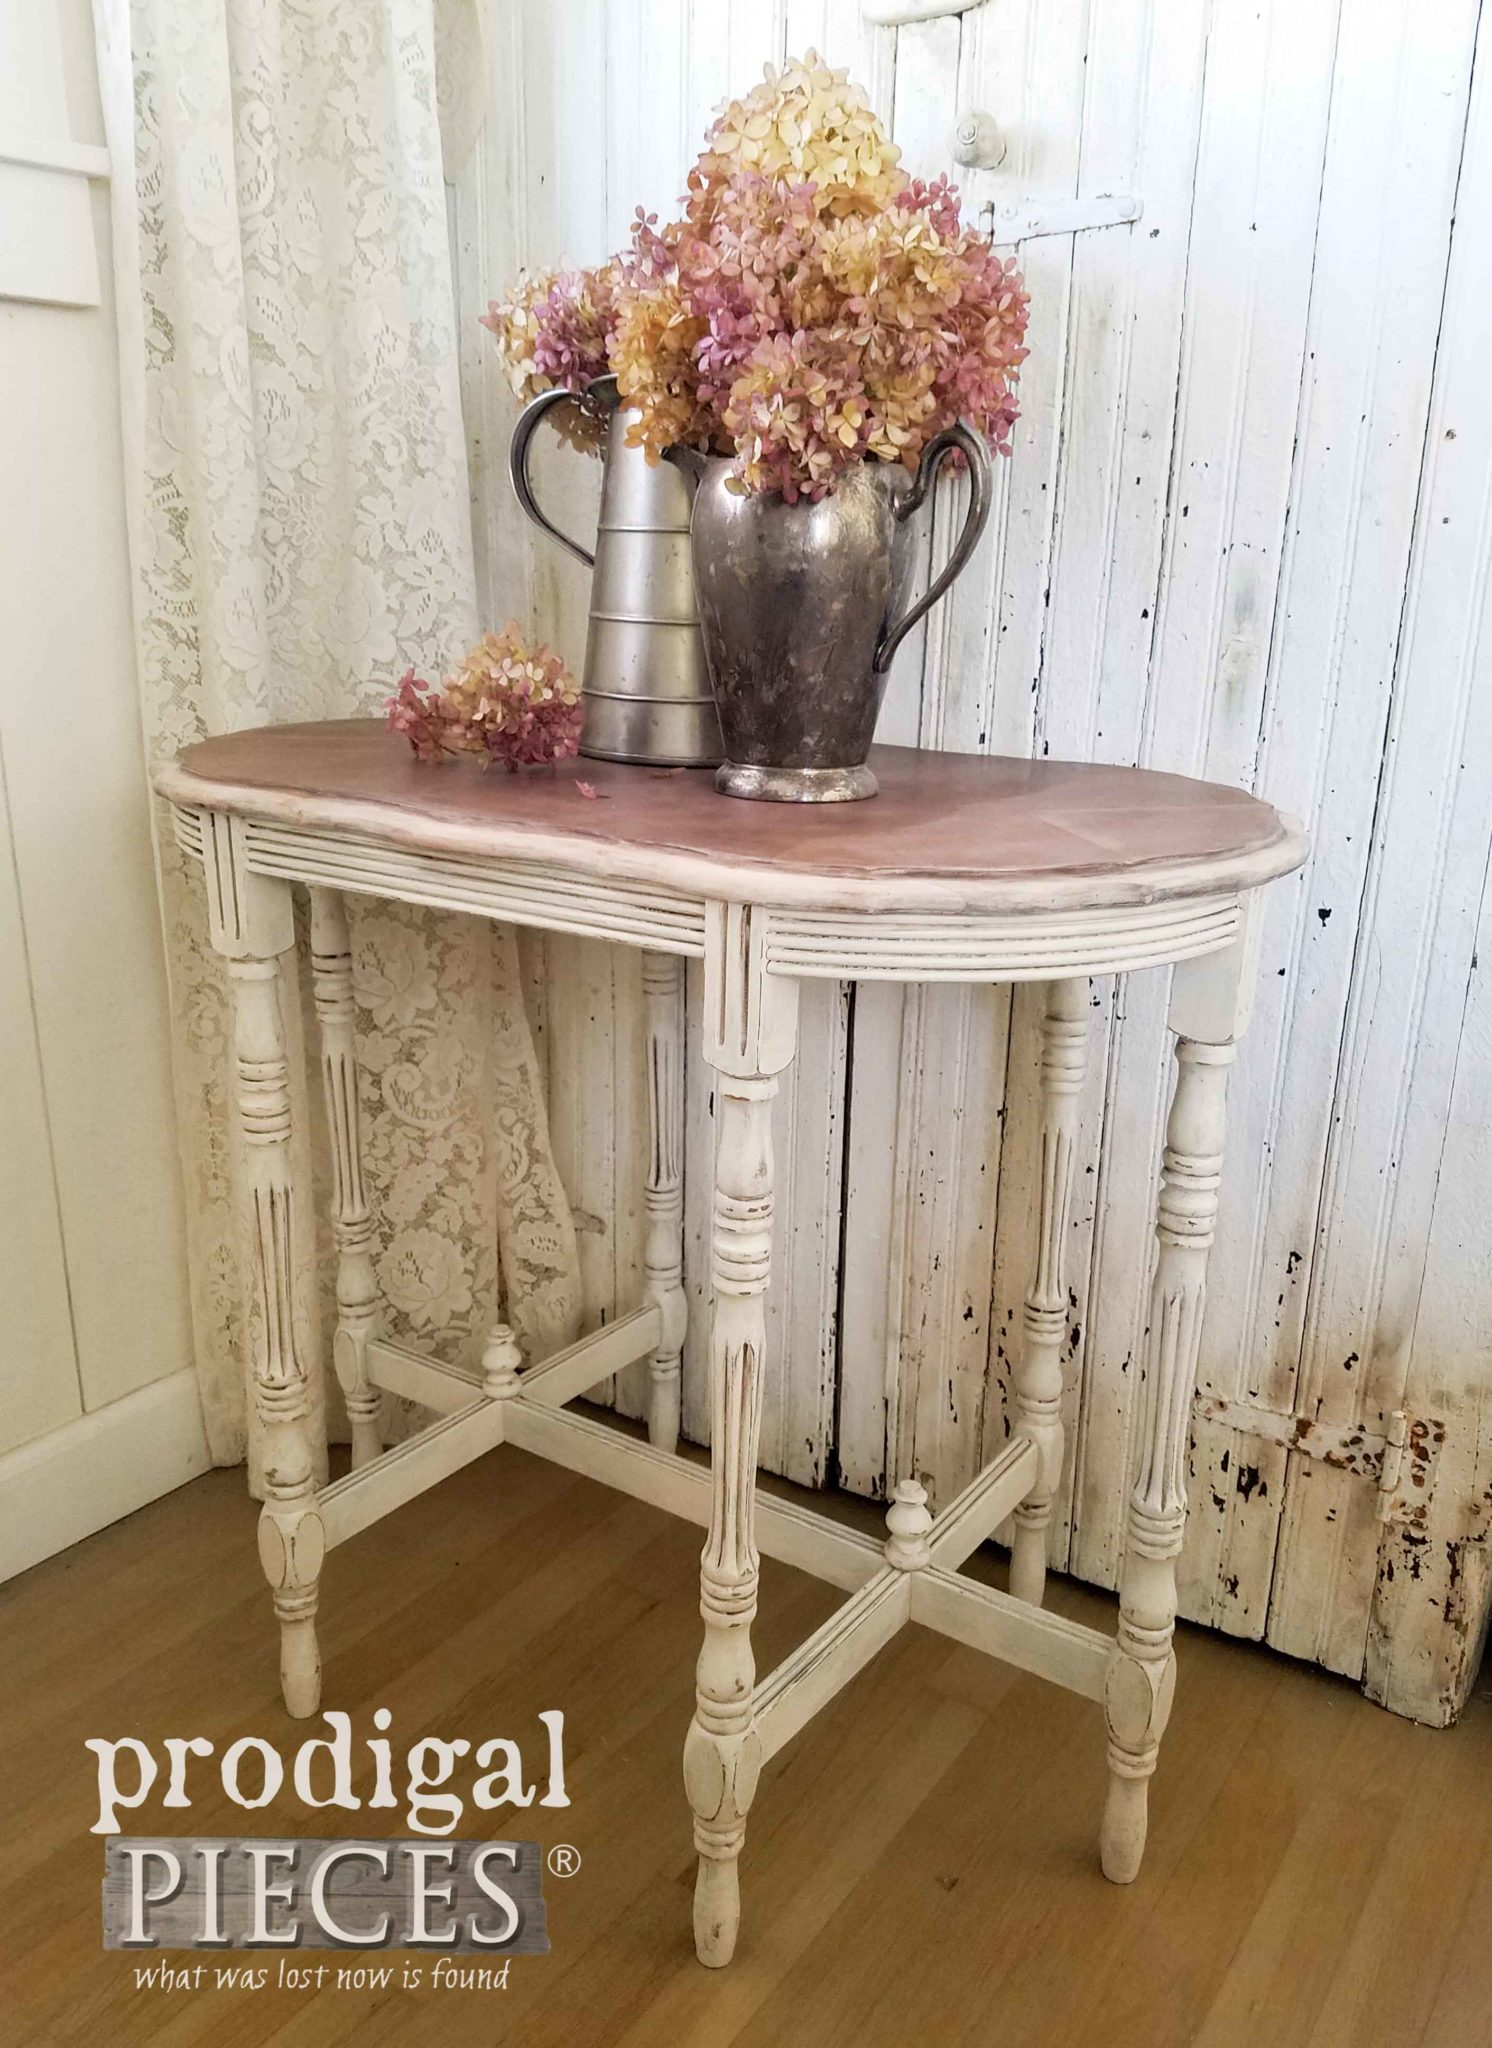 Antique Side Table with Hydrangea Flowers by Prodigal Pieces | prodigalpieces.com